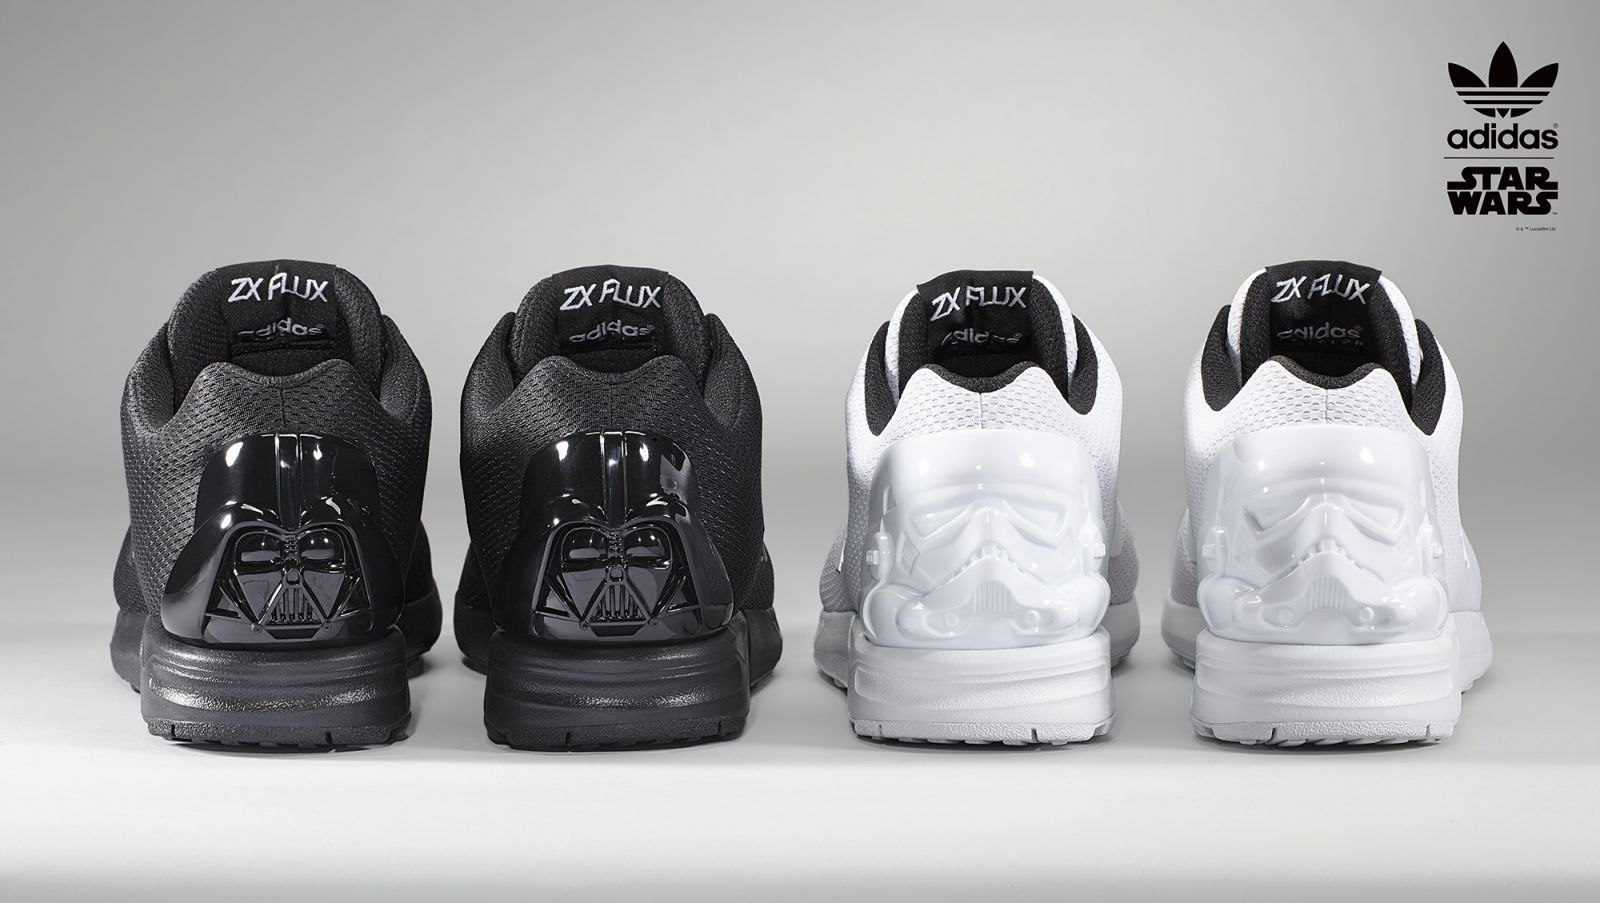 2a9e6f227f24 adidas Is Keeping Star Wars Fans Happy With These Sneakers. May the force  be with you.